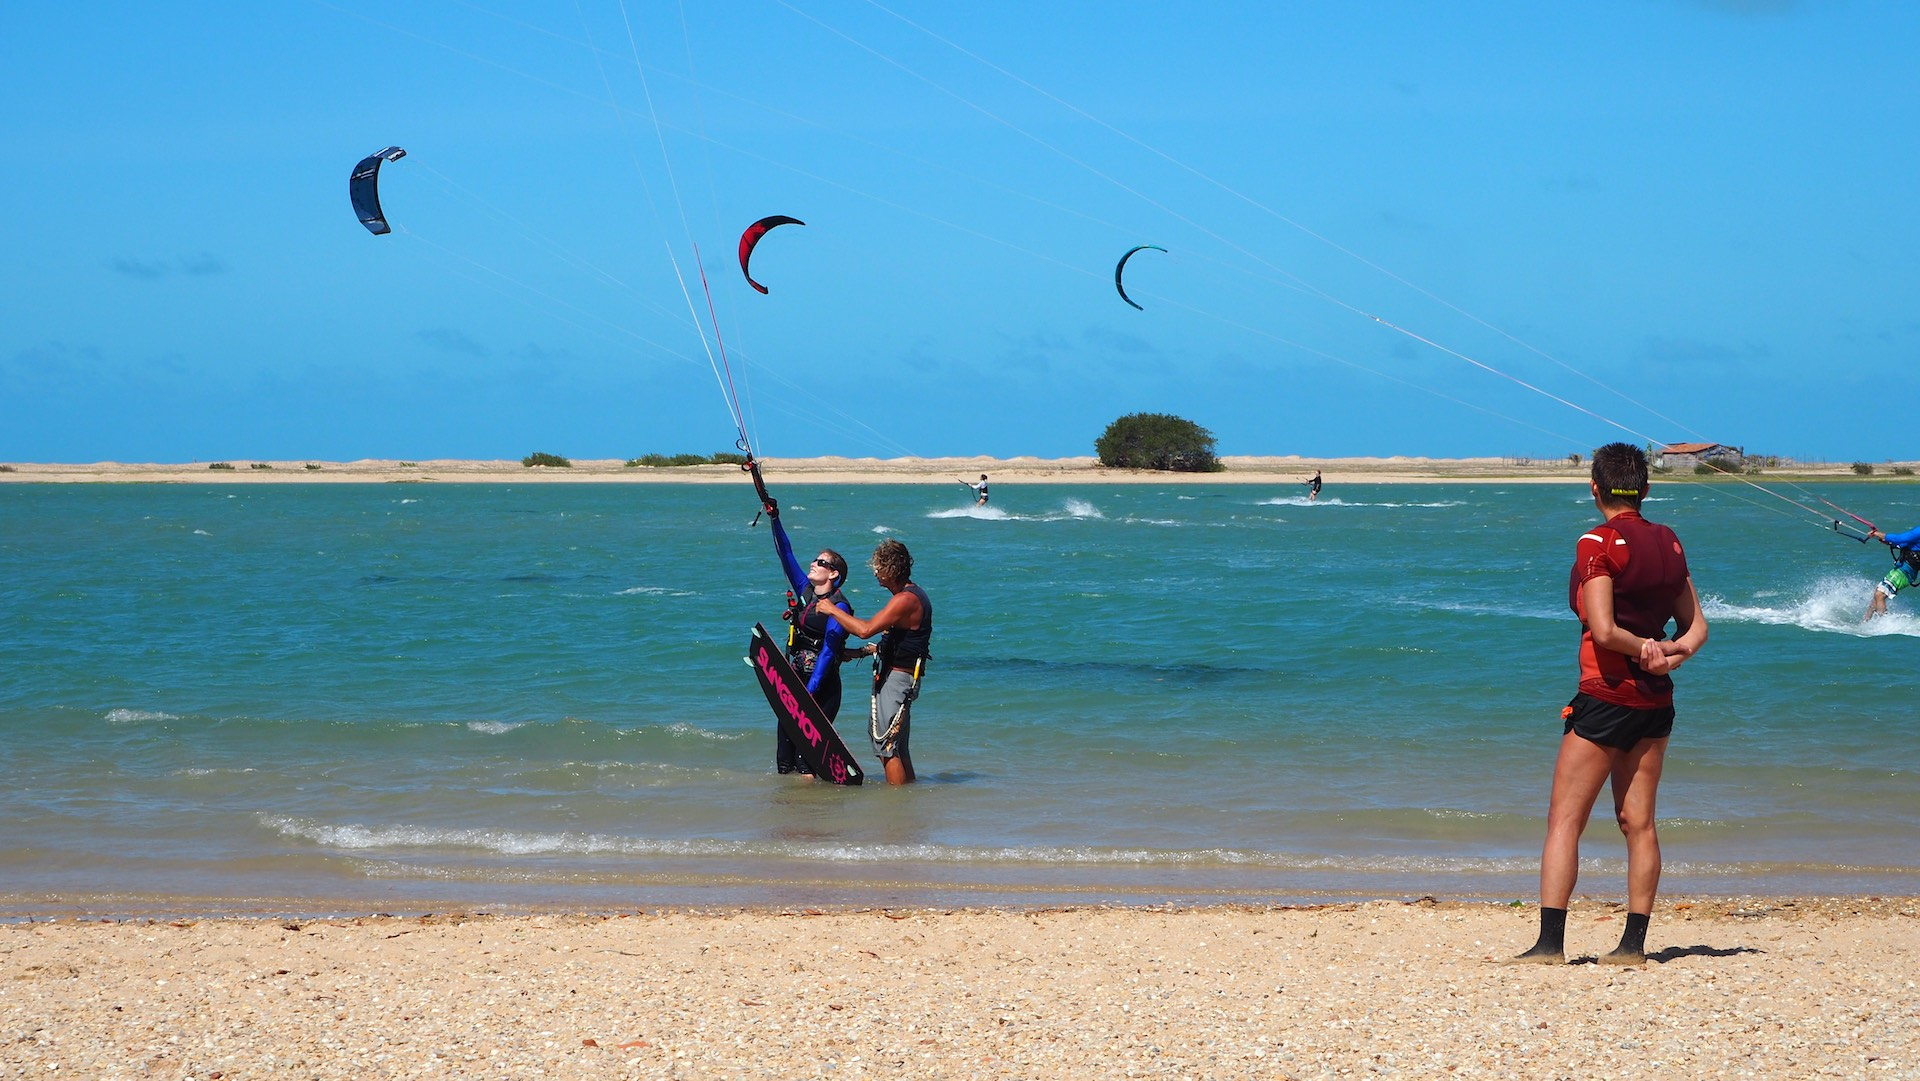 Ilha Do Guajiru is a perfect spot to learn kiting. Shallow water, and constant steady wind.